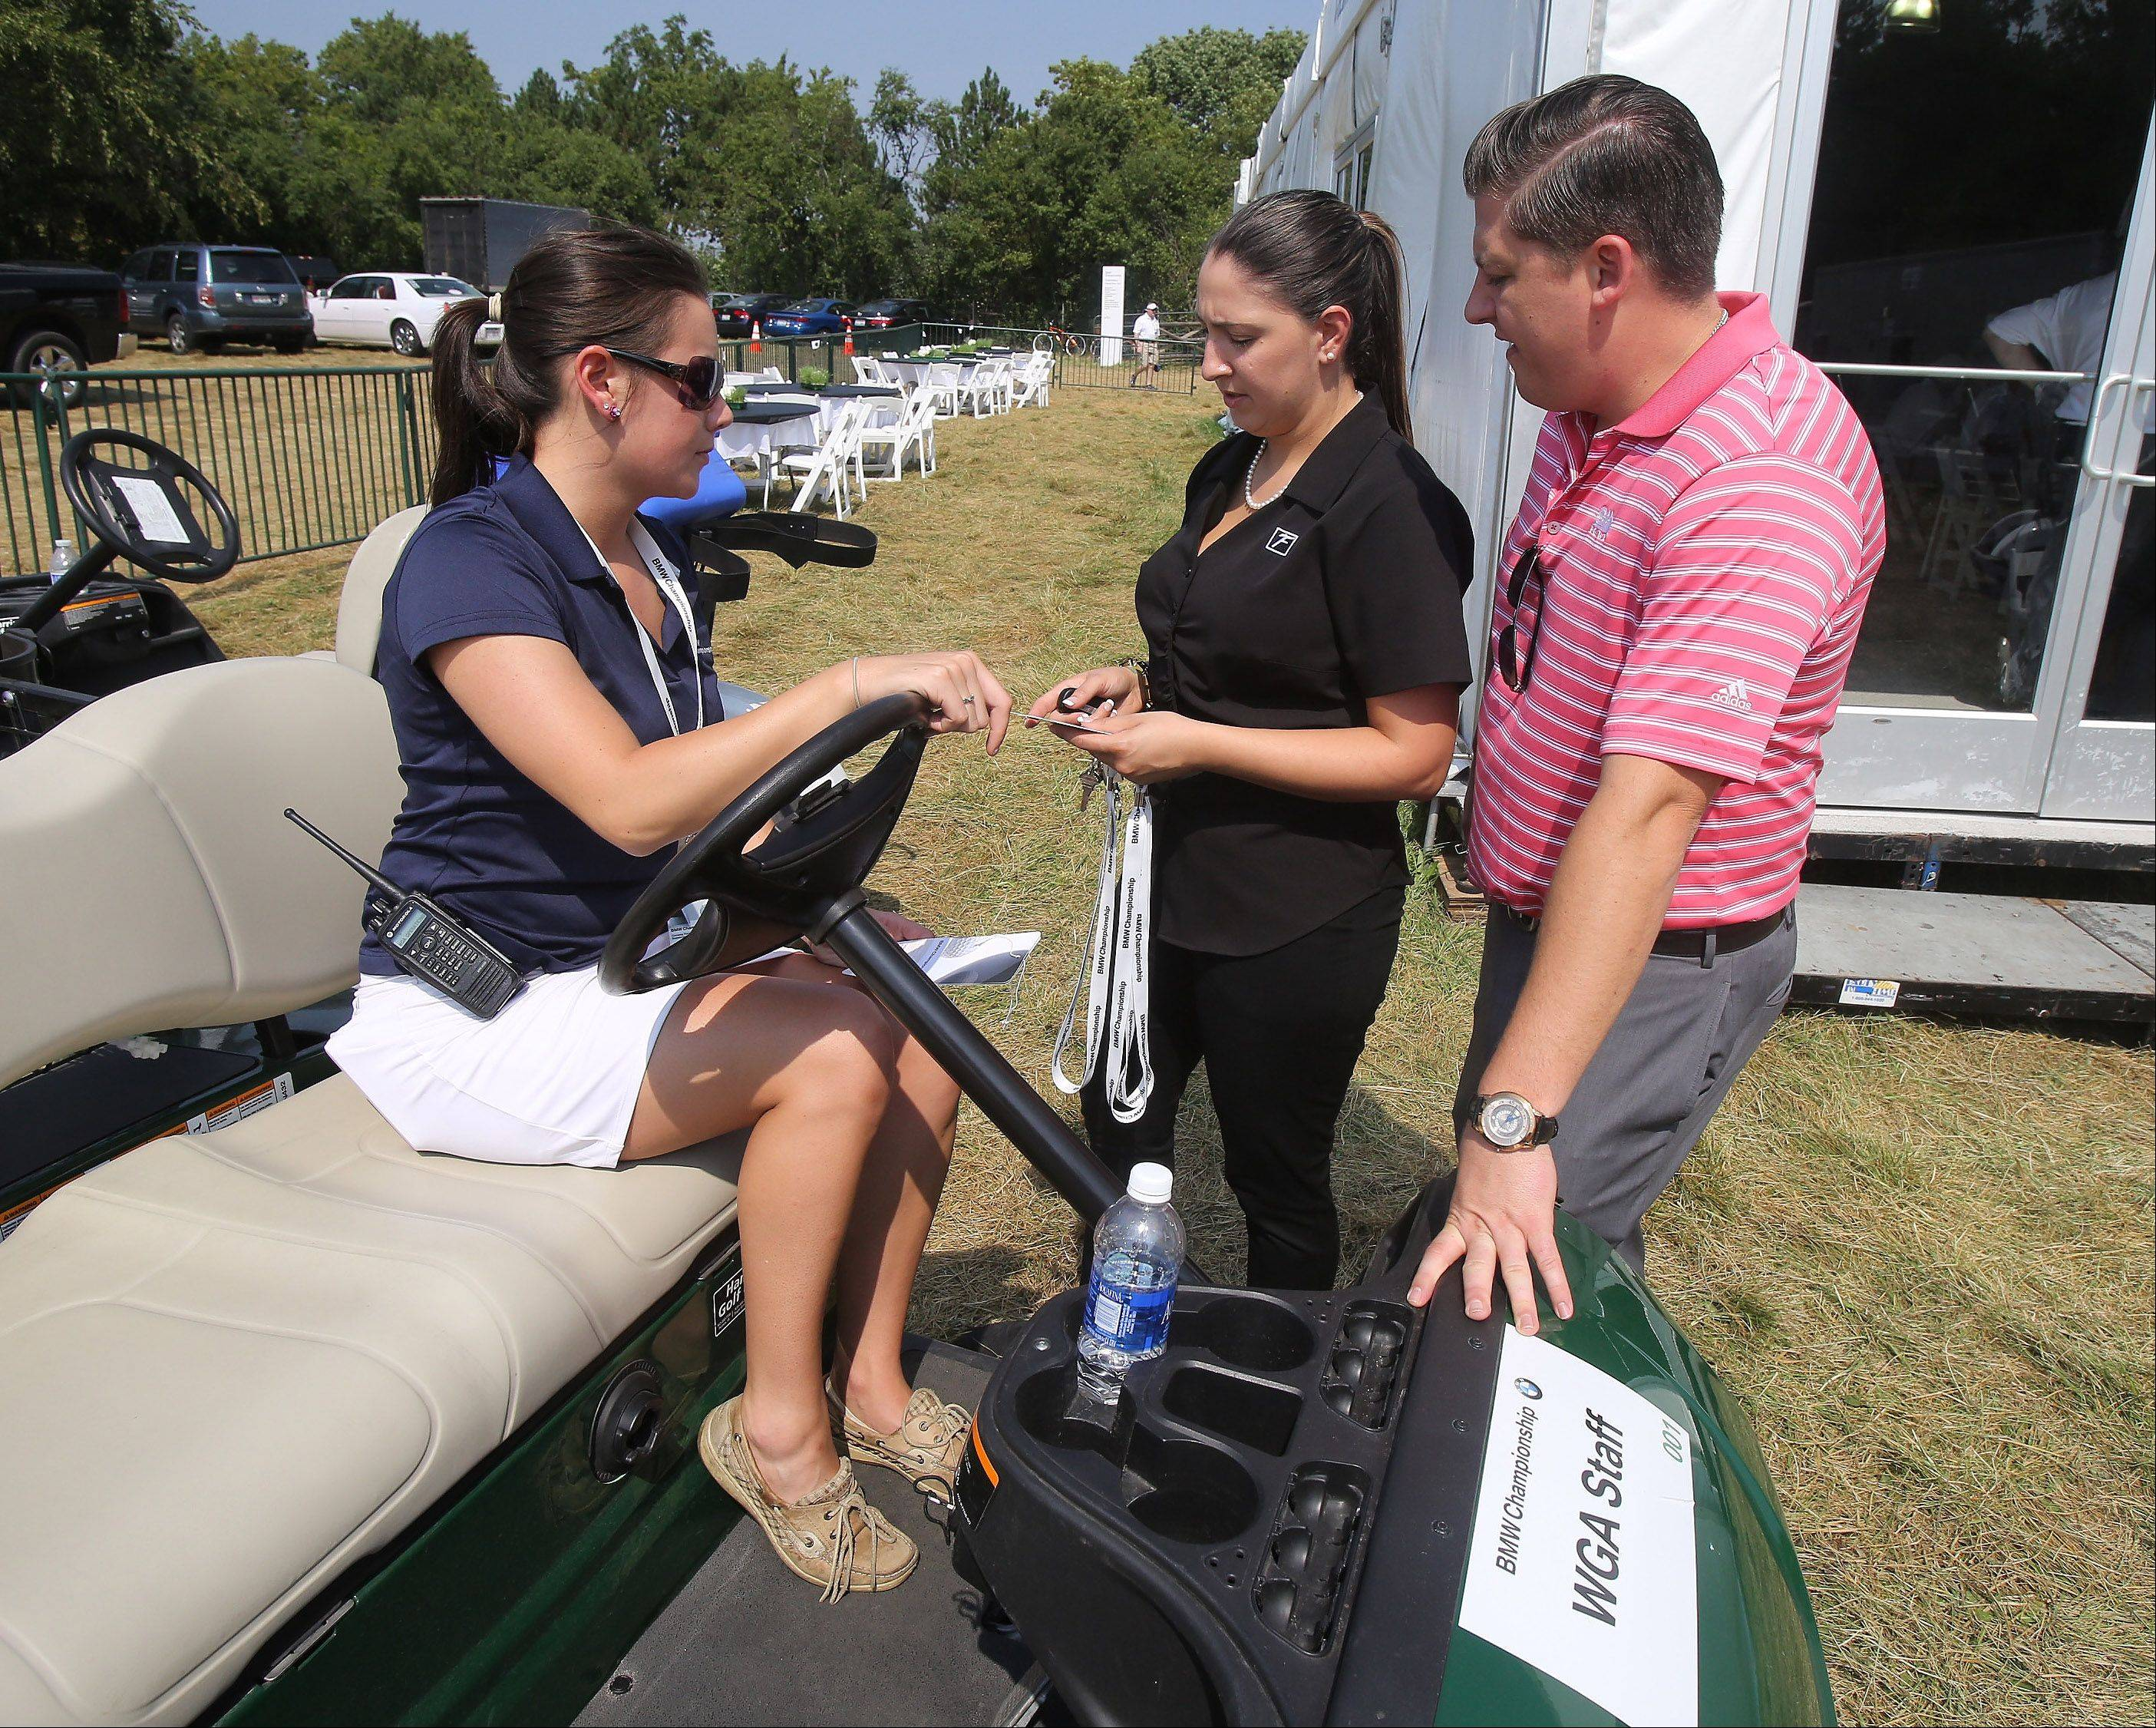 Volunteer Coordinator Kelsey Knapp, left, speaks with vendors outside the volunteer hospitality tent at the BMW Championship at Conway Farms Golf Club in Lake Forest. Volunteers are a crucial part of tournament operations, organizers say.